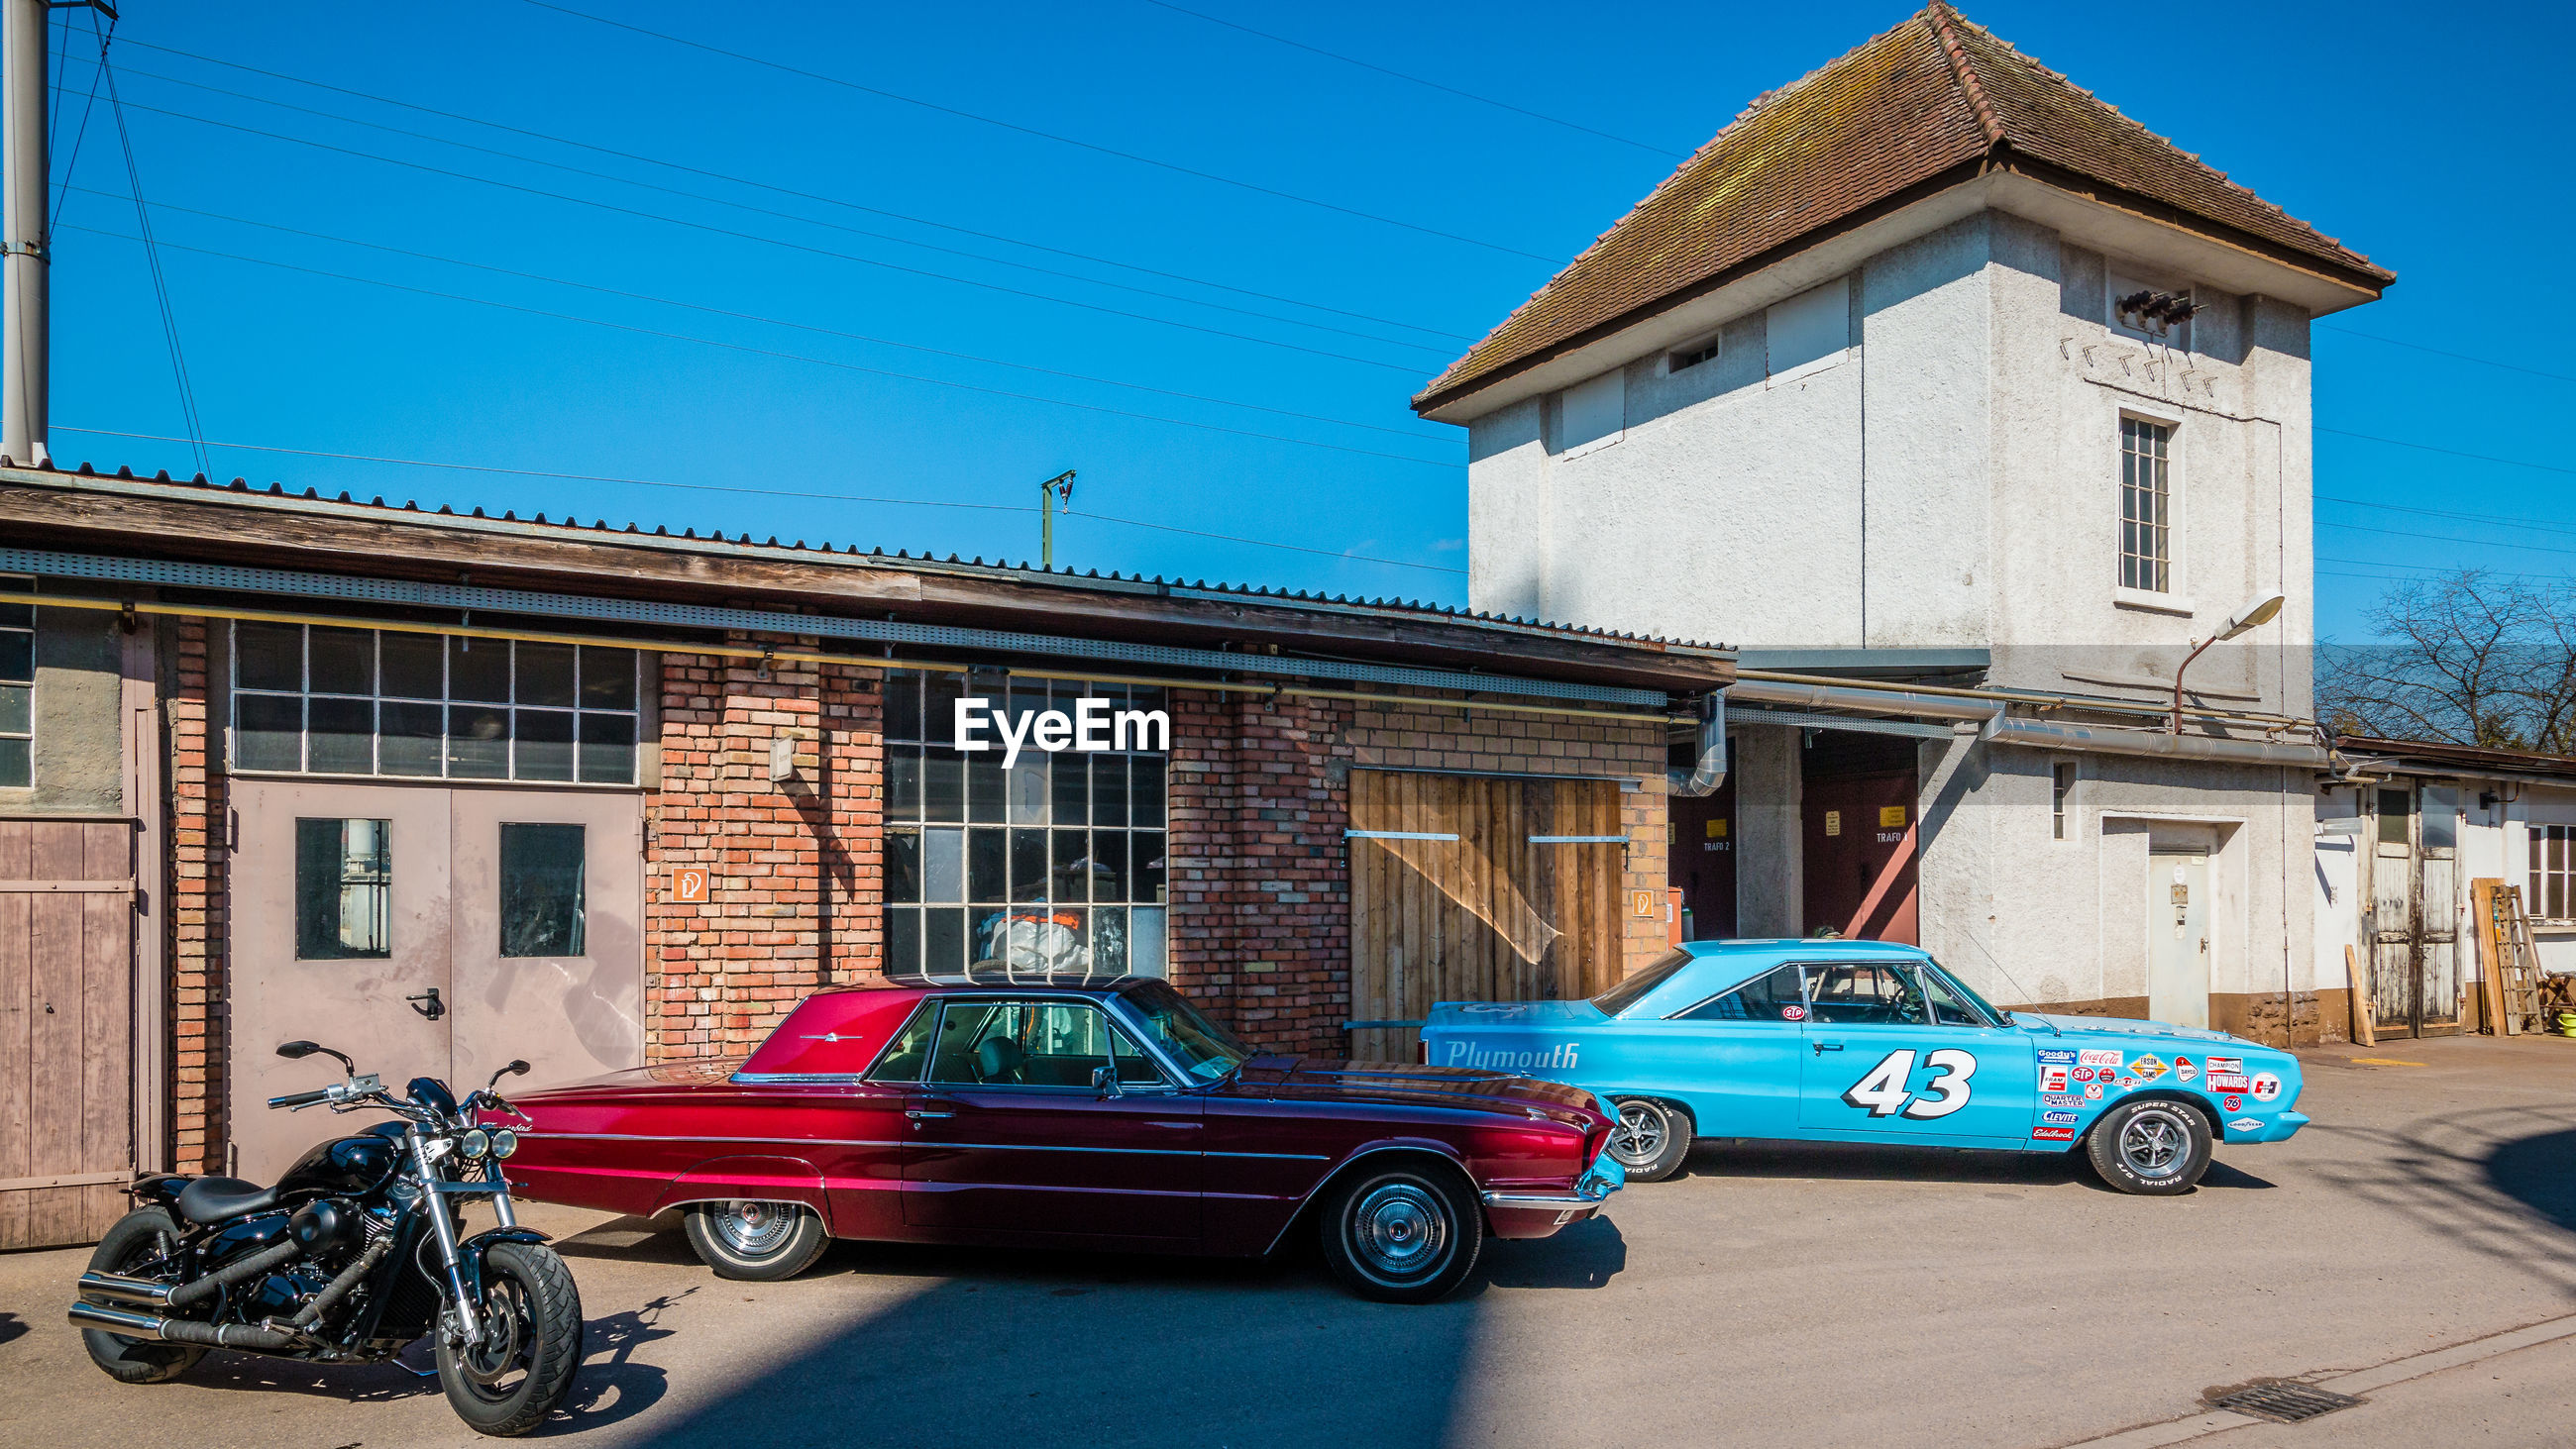 building exterior, built structure, architecture, car, motor vehicle, mode of transportation, transportation, land vehicle, city, building, day, vintage car, retro styled, street, blue, residential district, no people, nature, sky, luxury